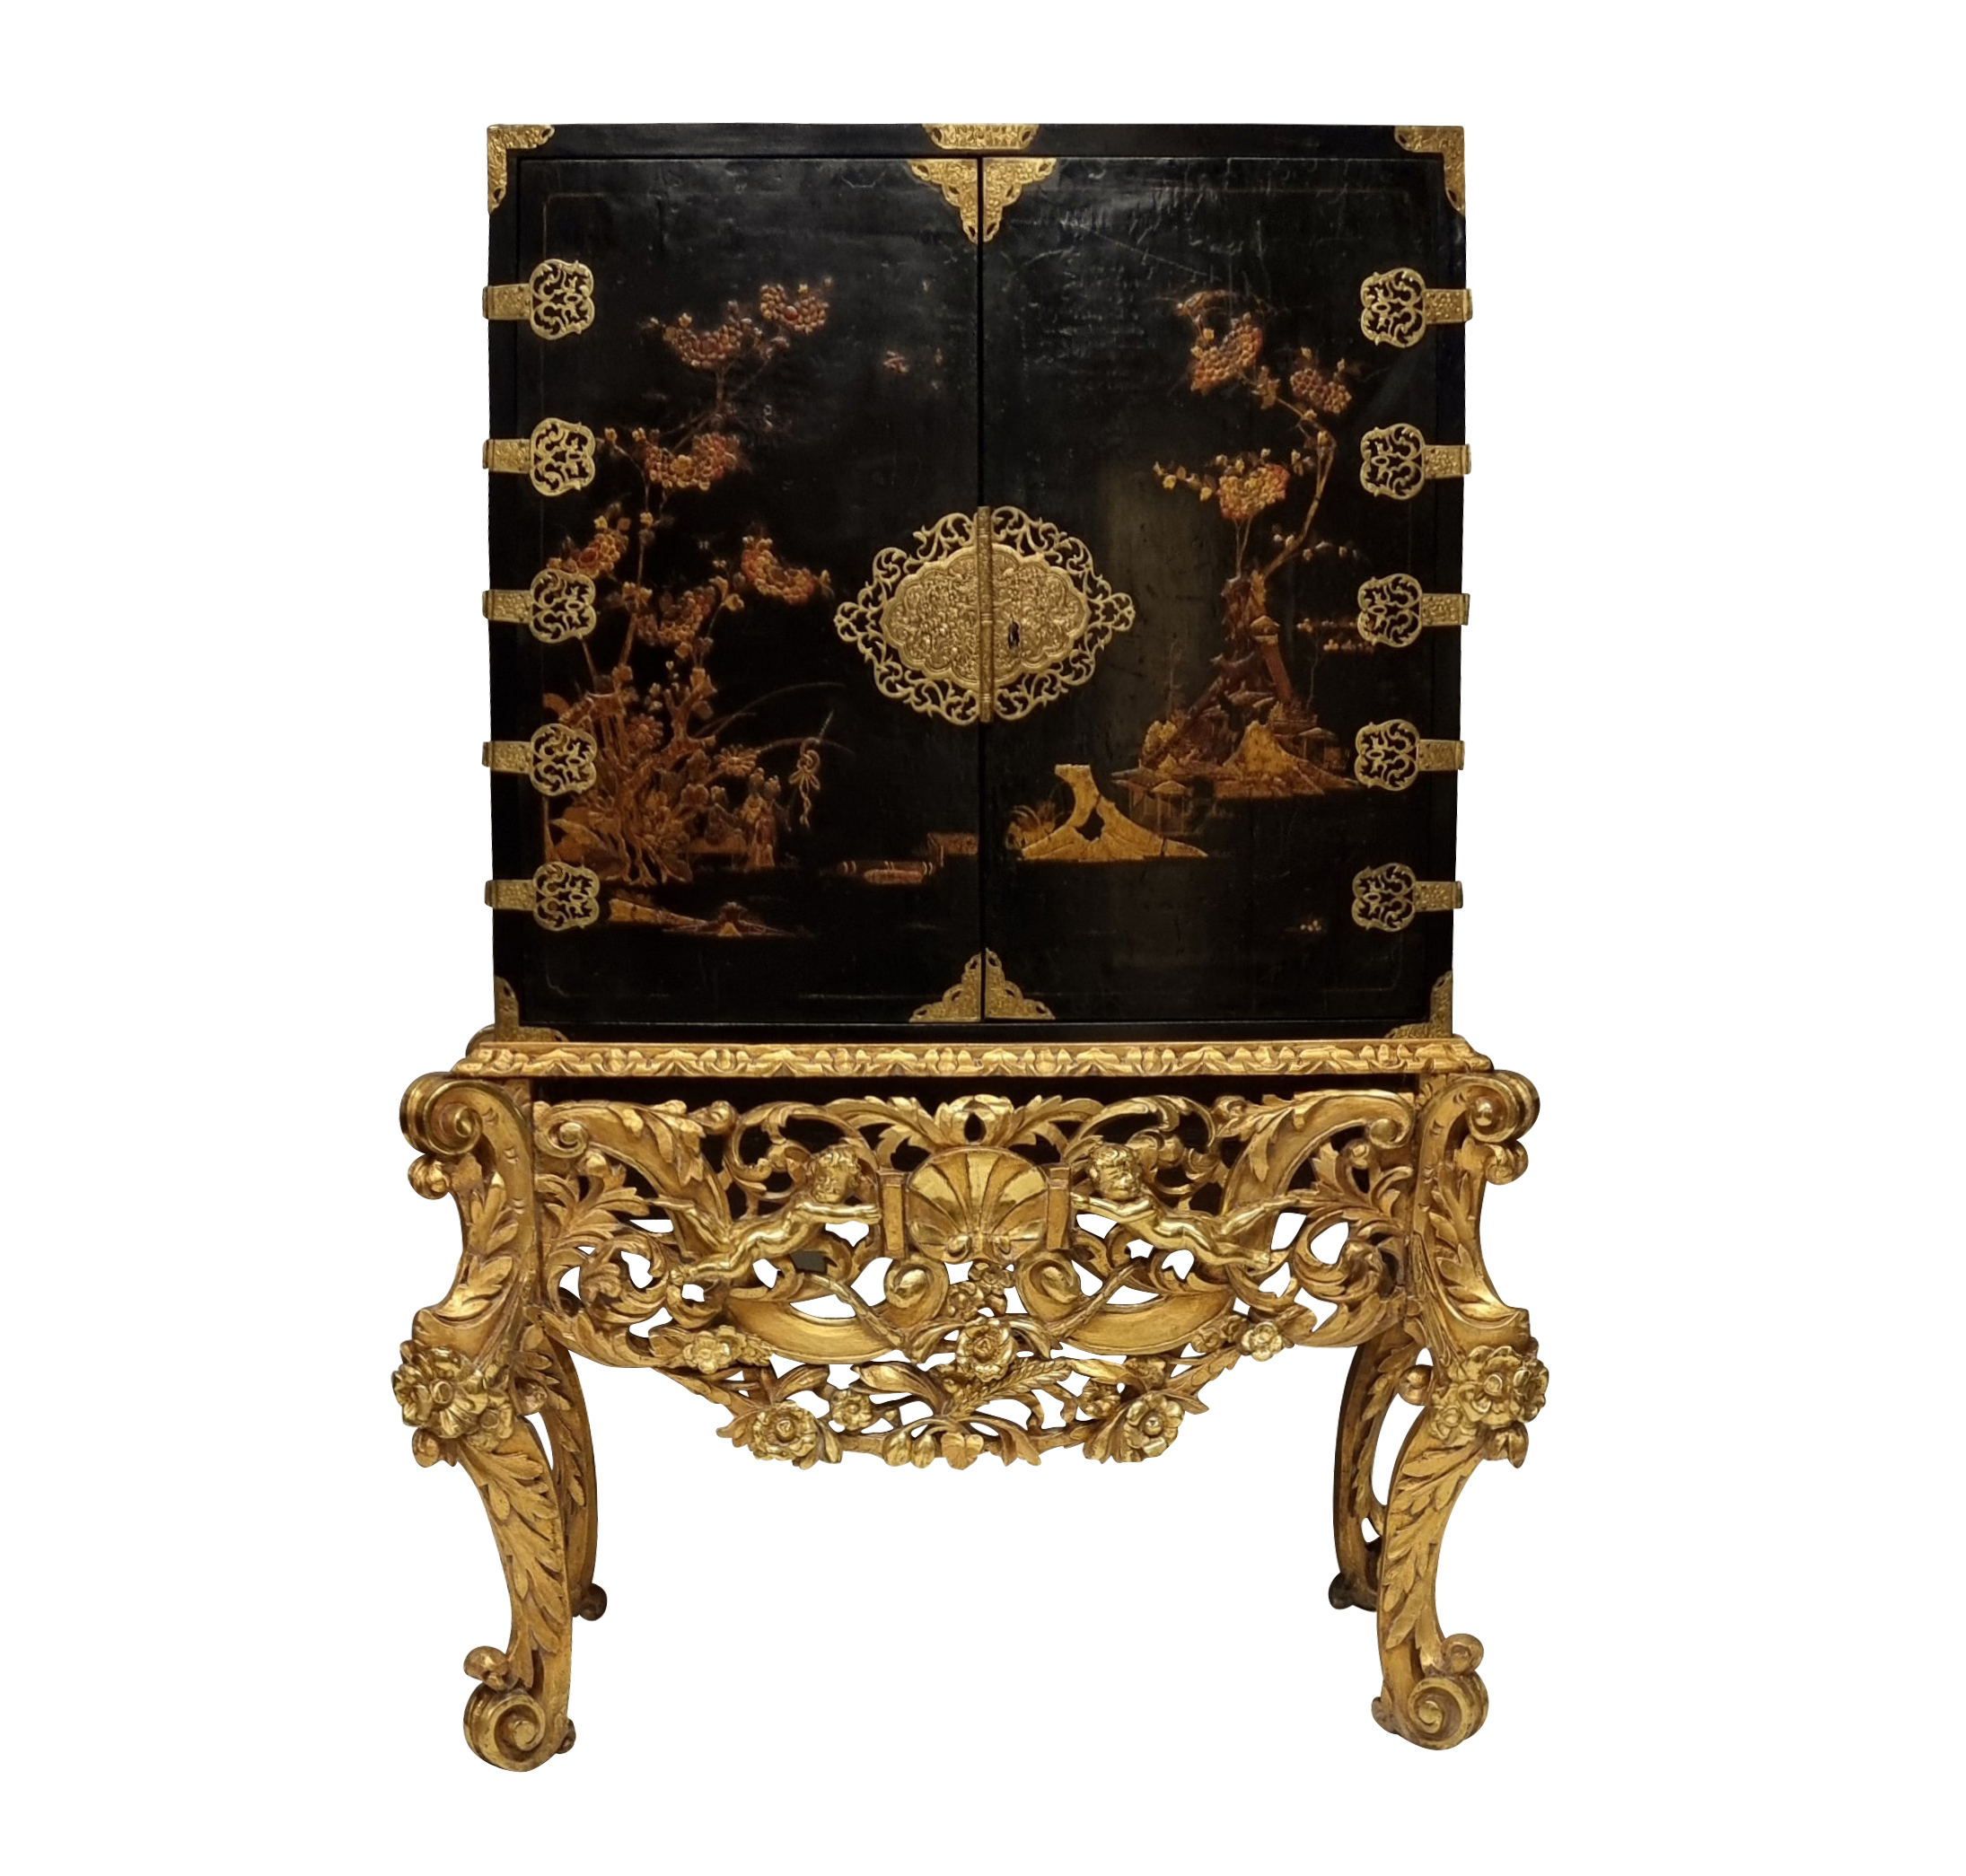 A CHARLES II JAPANNED CHINOISERIE CABINET ON STAND